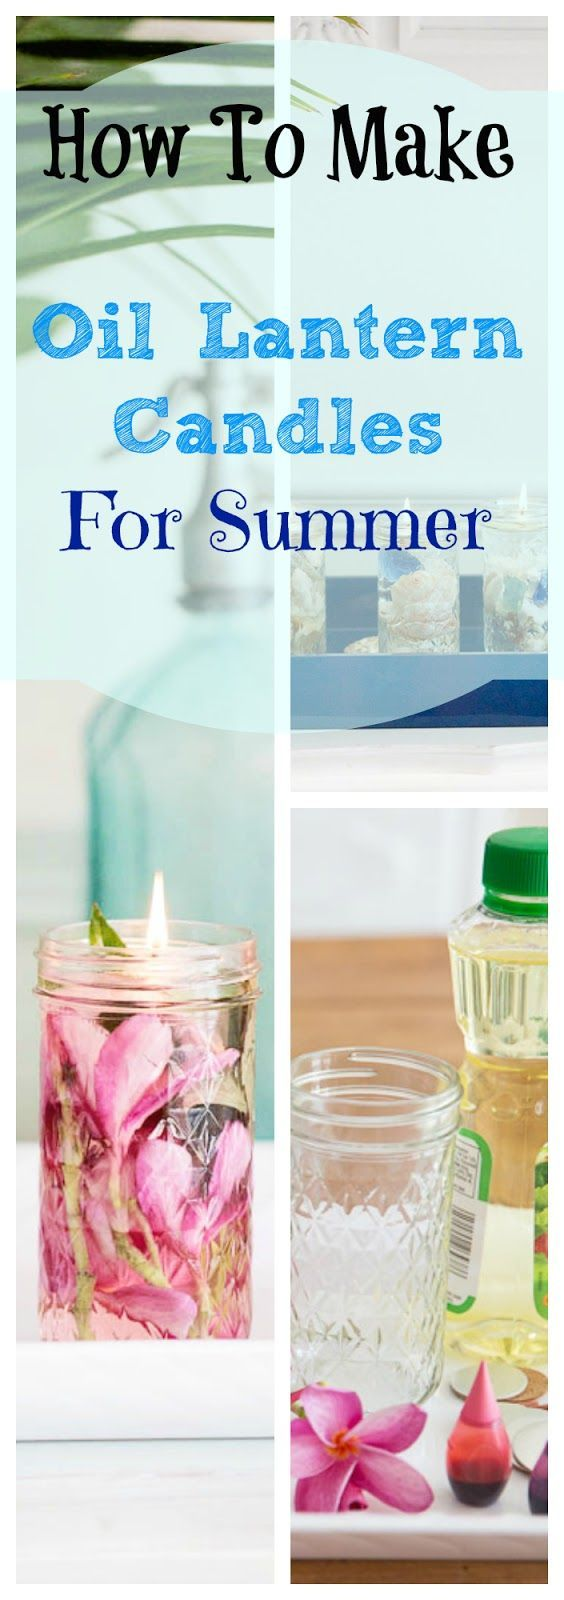 DIY Oil Lantern Candles for Summer from Shabbyfufu Blog. These oil lantern candles are easy to make and pretty to use for all your summer entertaining!